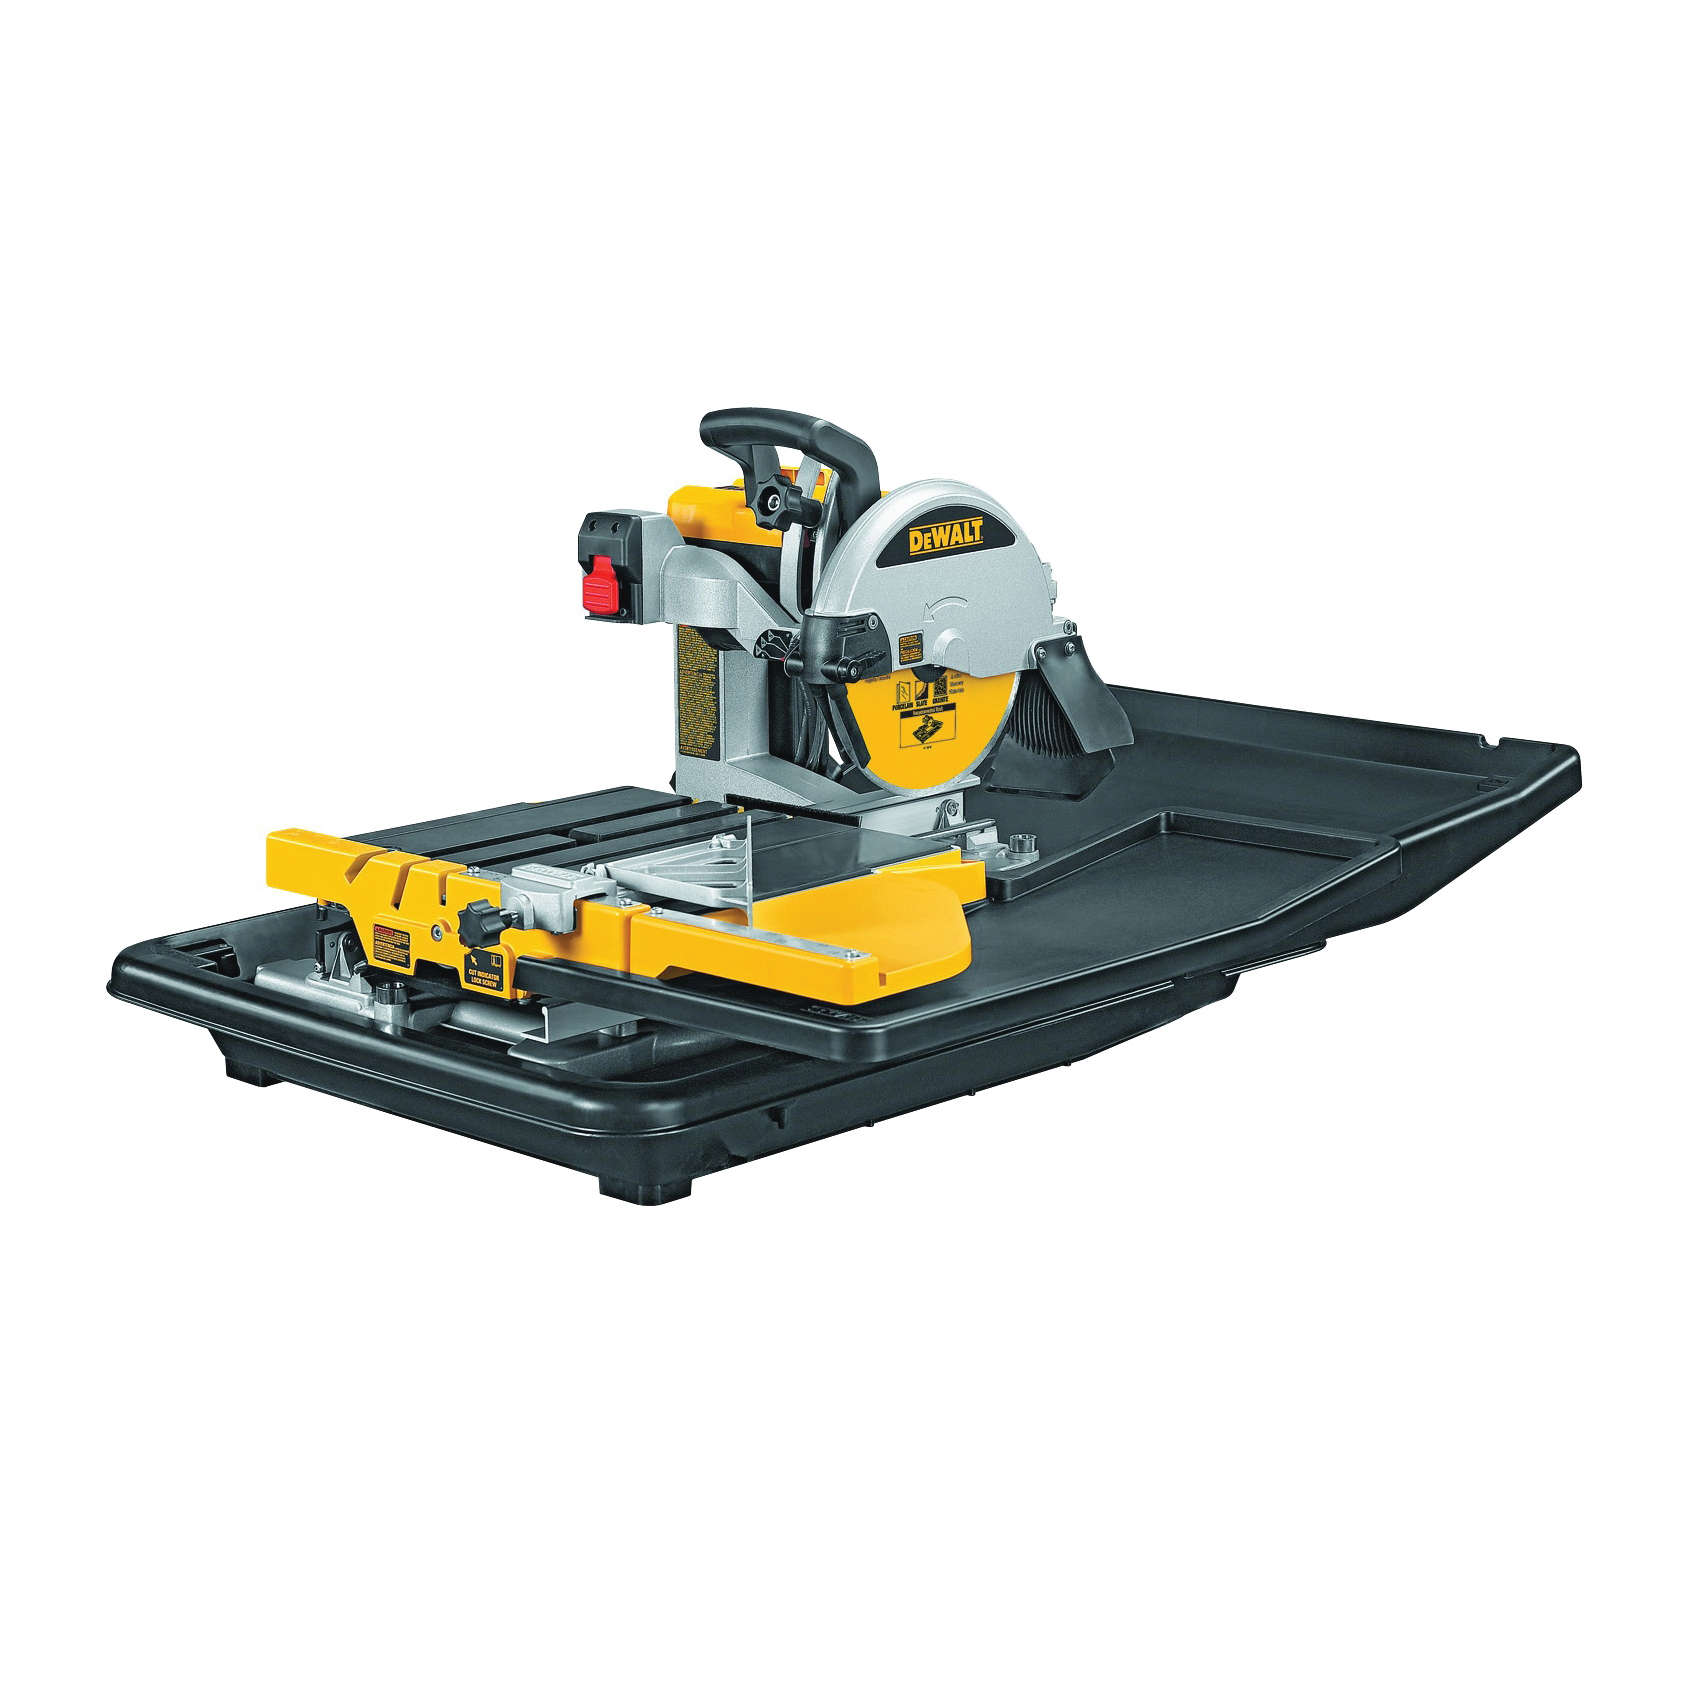 Picture of DeWALT D24000 Tile Saw, 120 V, 15 A, 10 in Dia Blade, 25 in Ripping, 18 in Cutting Capacity